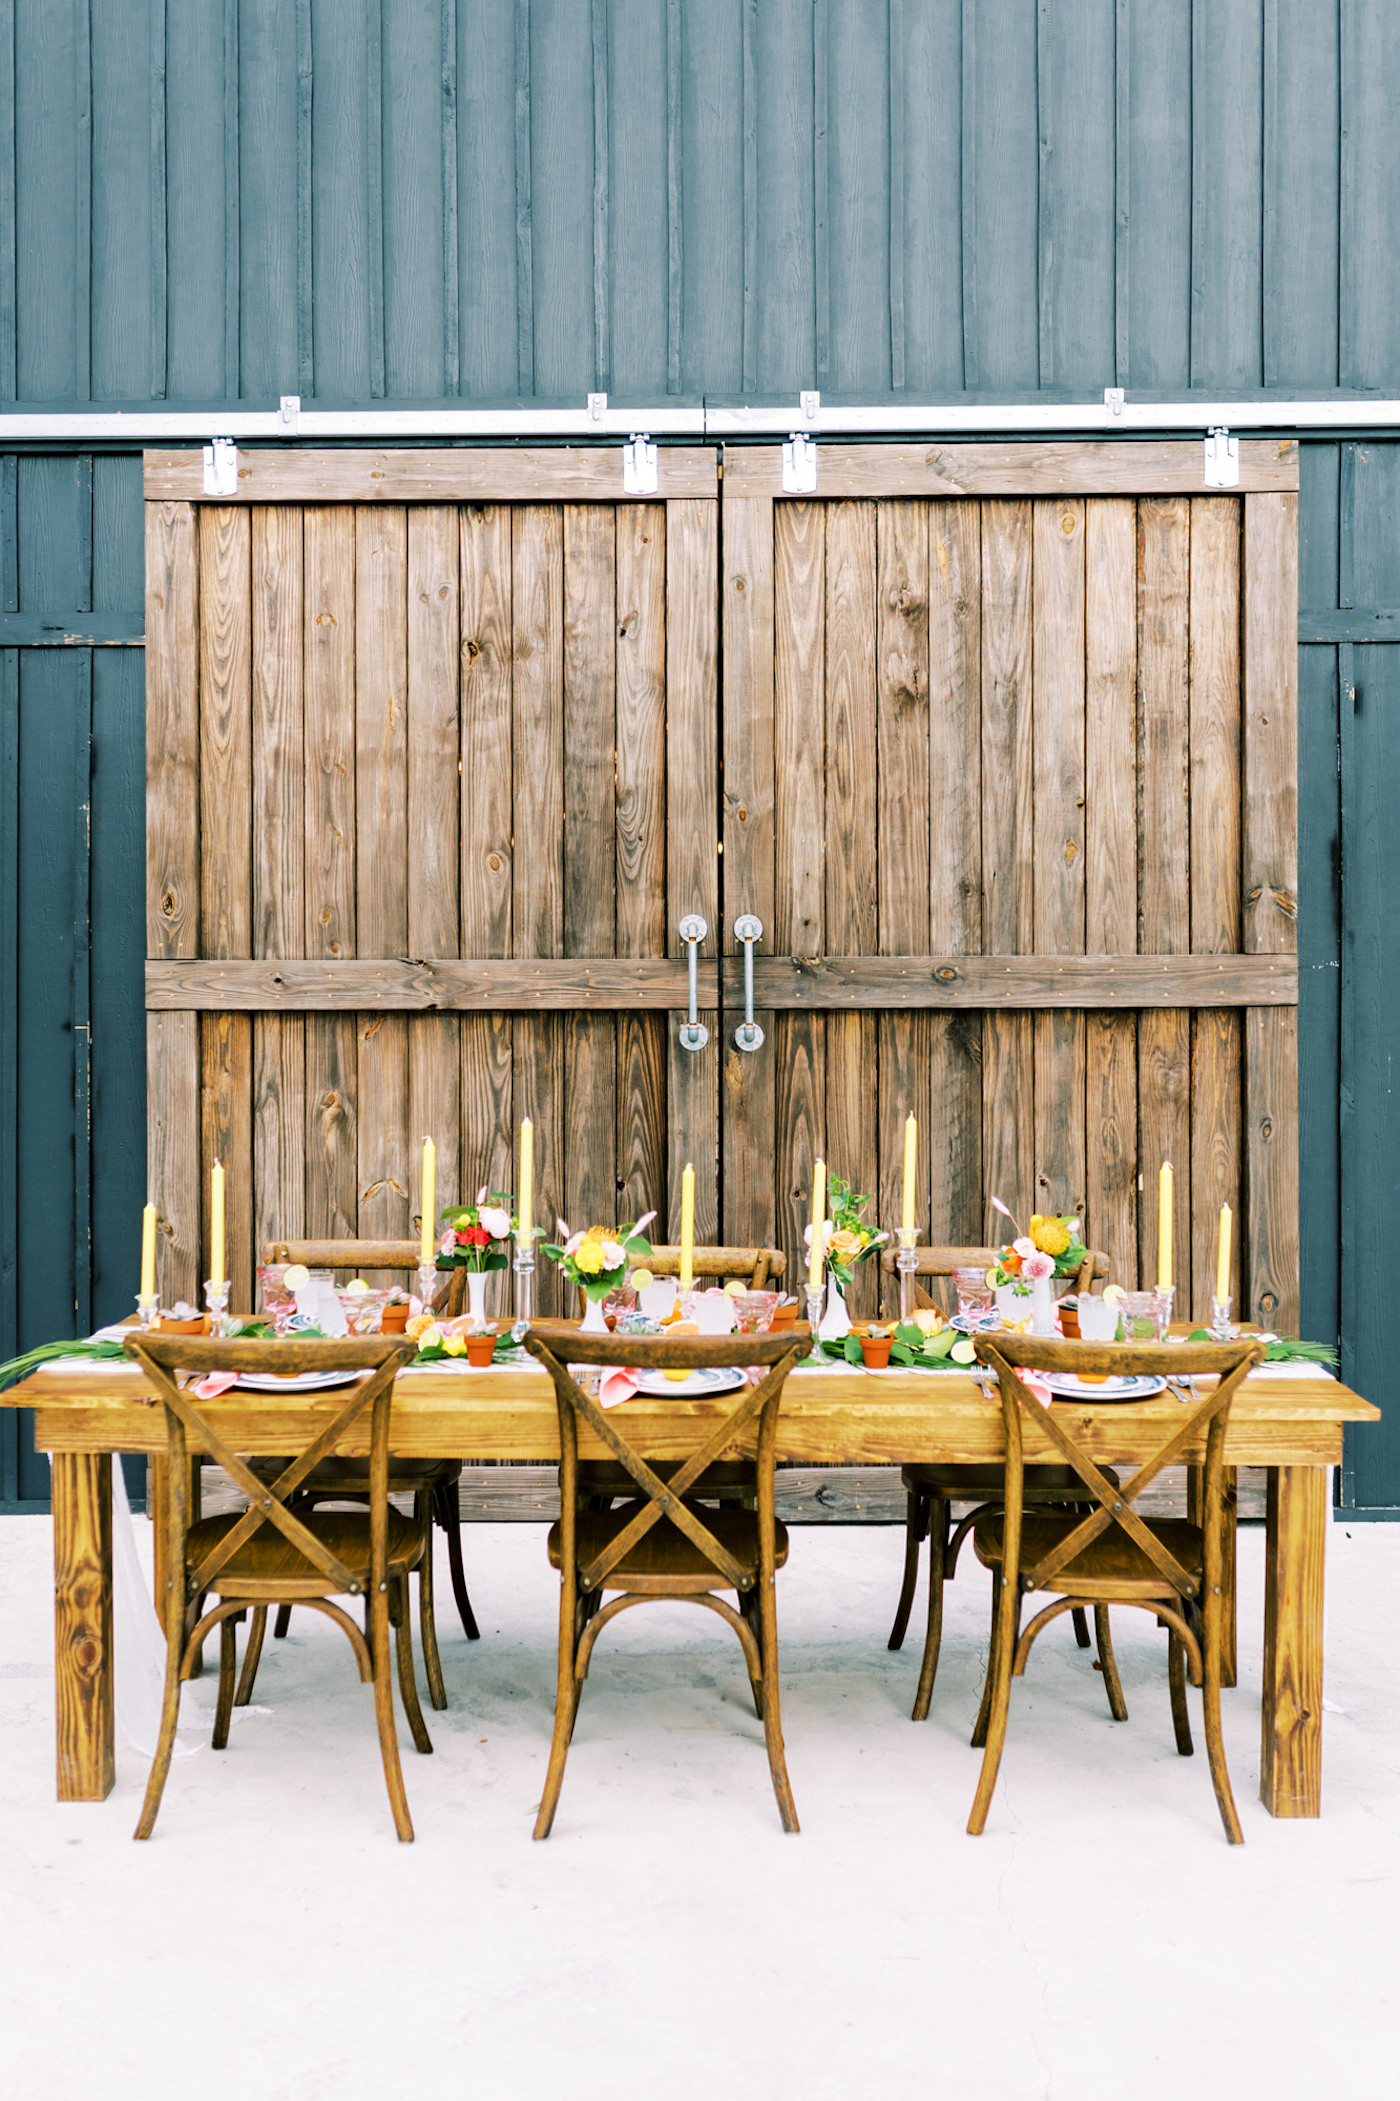 Bright Colorful Florida Citrus Wedding Inspiration | Outdoor Reception Table at Rustic Barn Farm Venue | Wood Farm Feasting Table with Wood French Country Cross Back Chairs | Wedding Centerpiece with Colorful Bud Vases and Taper Candles